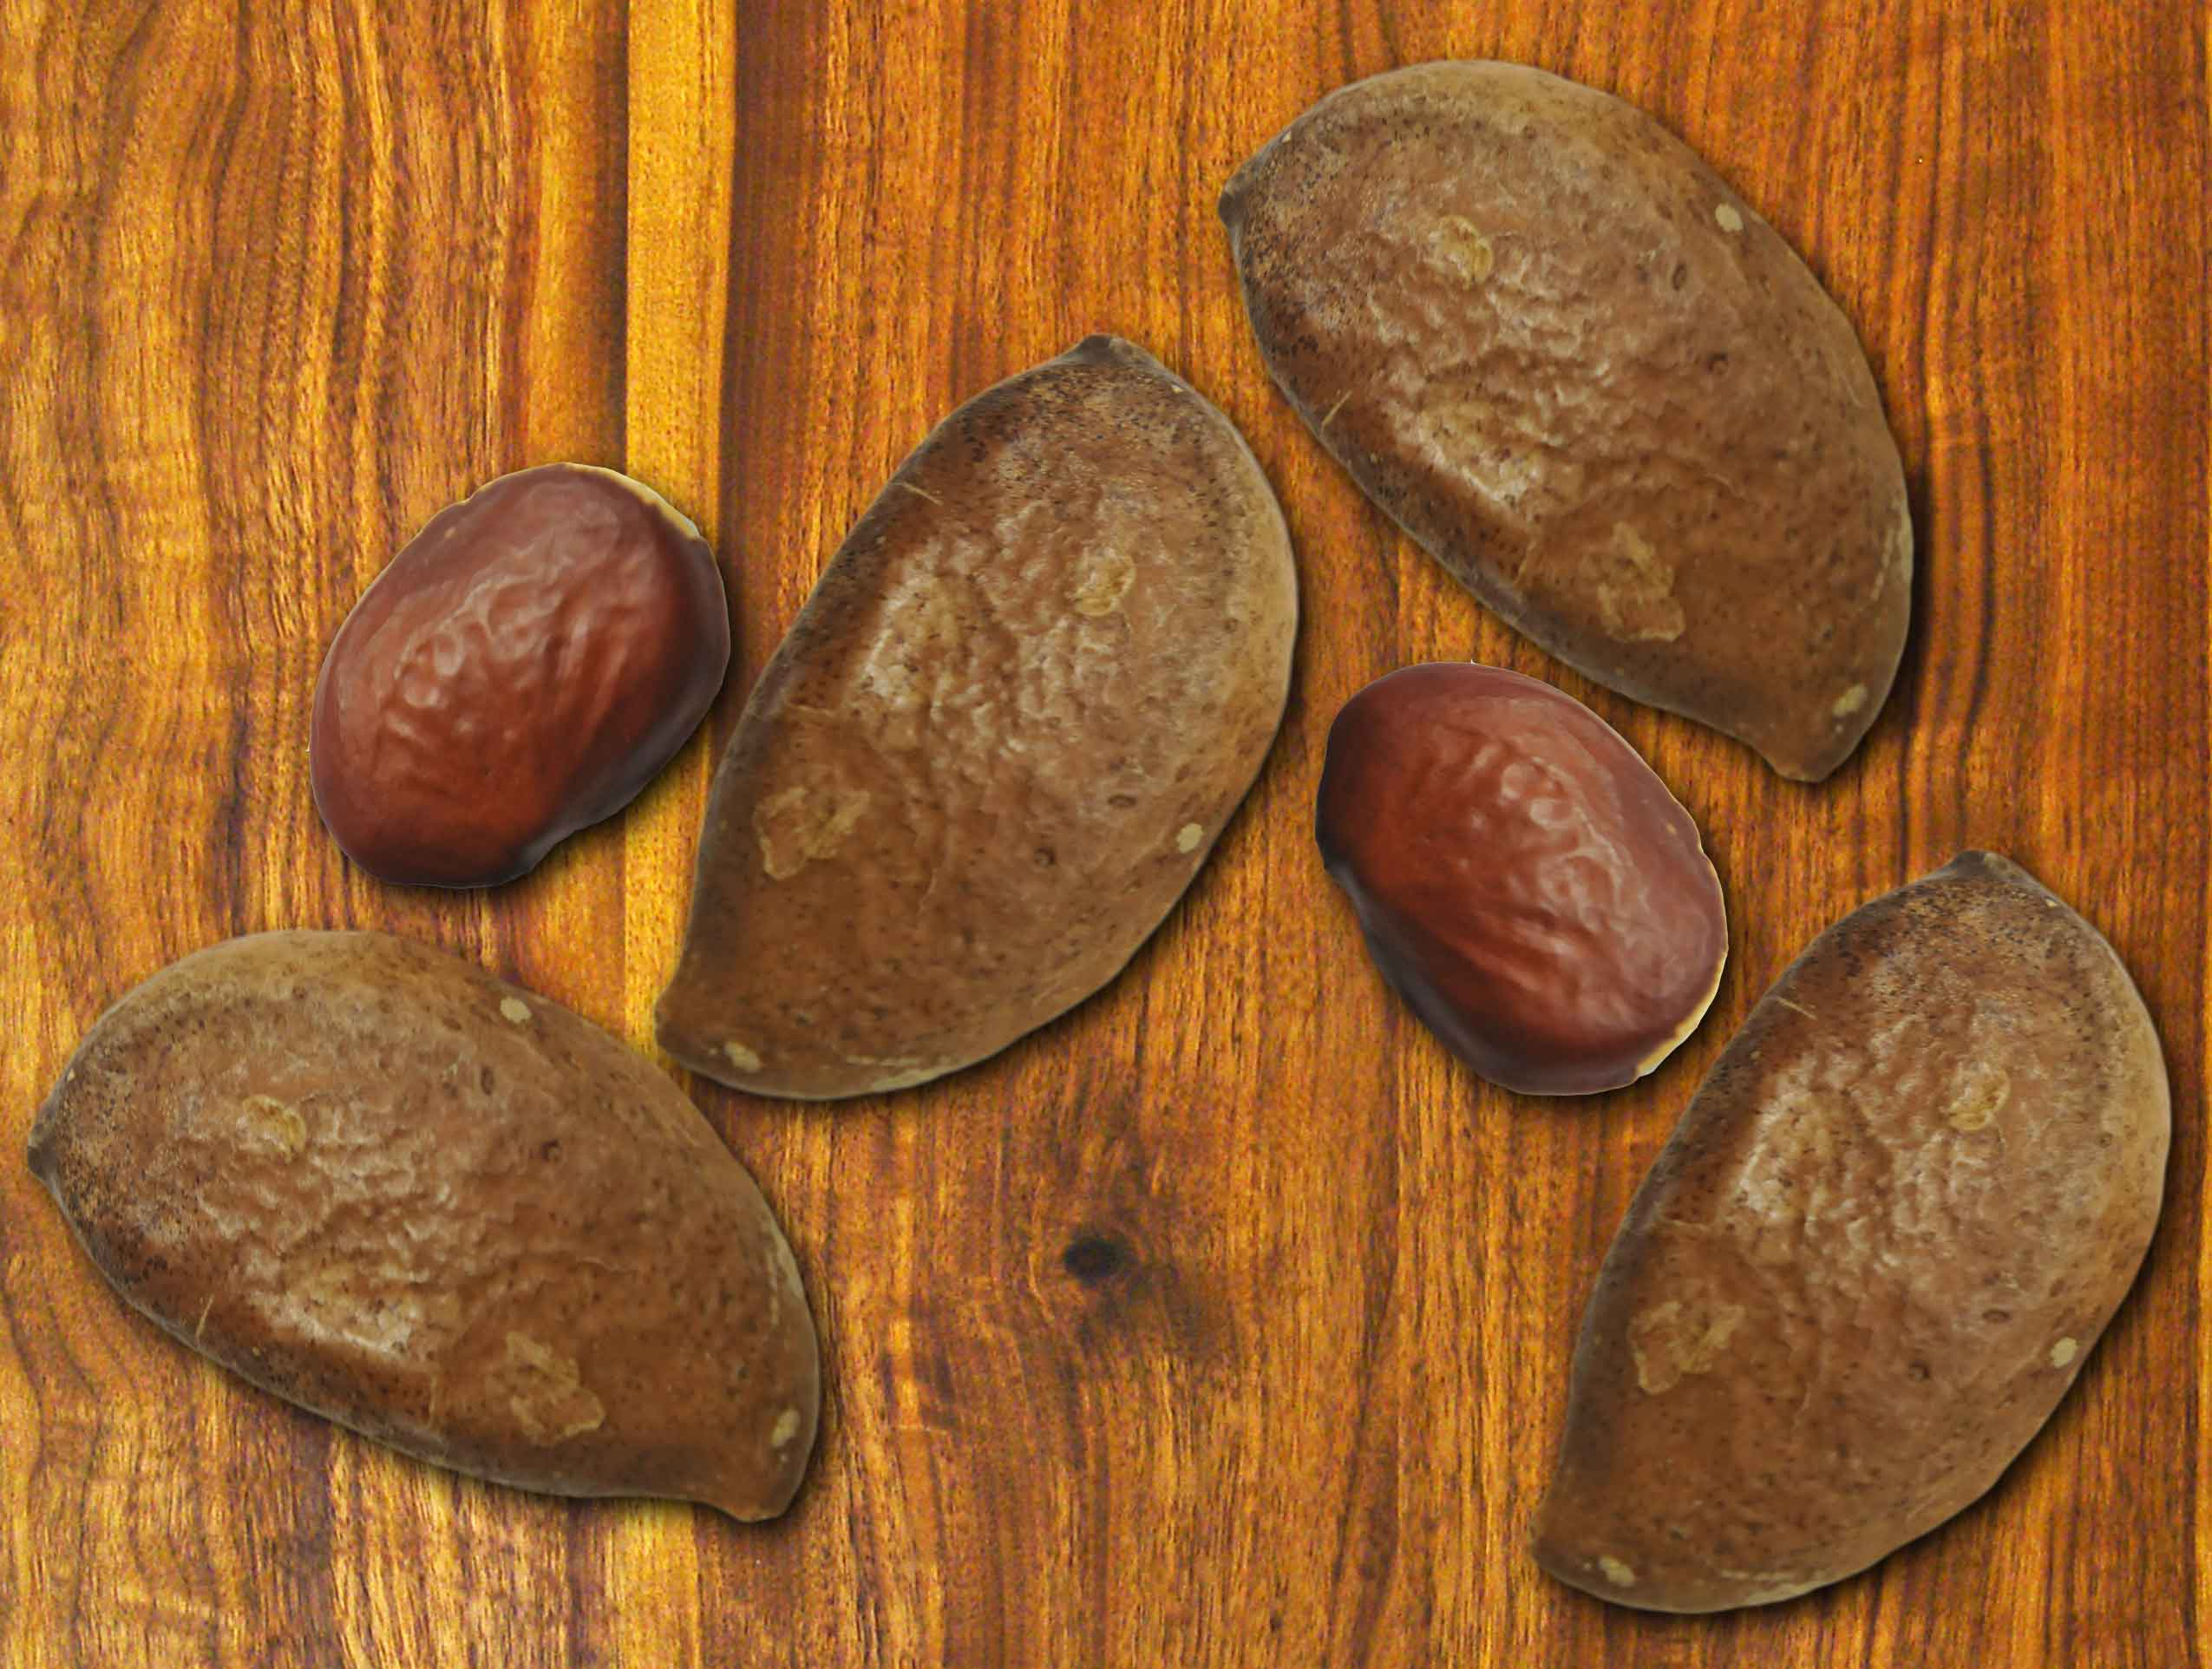 Pongamia Nuts